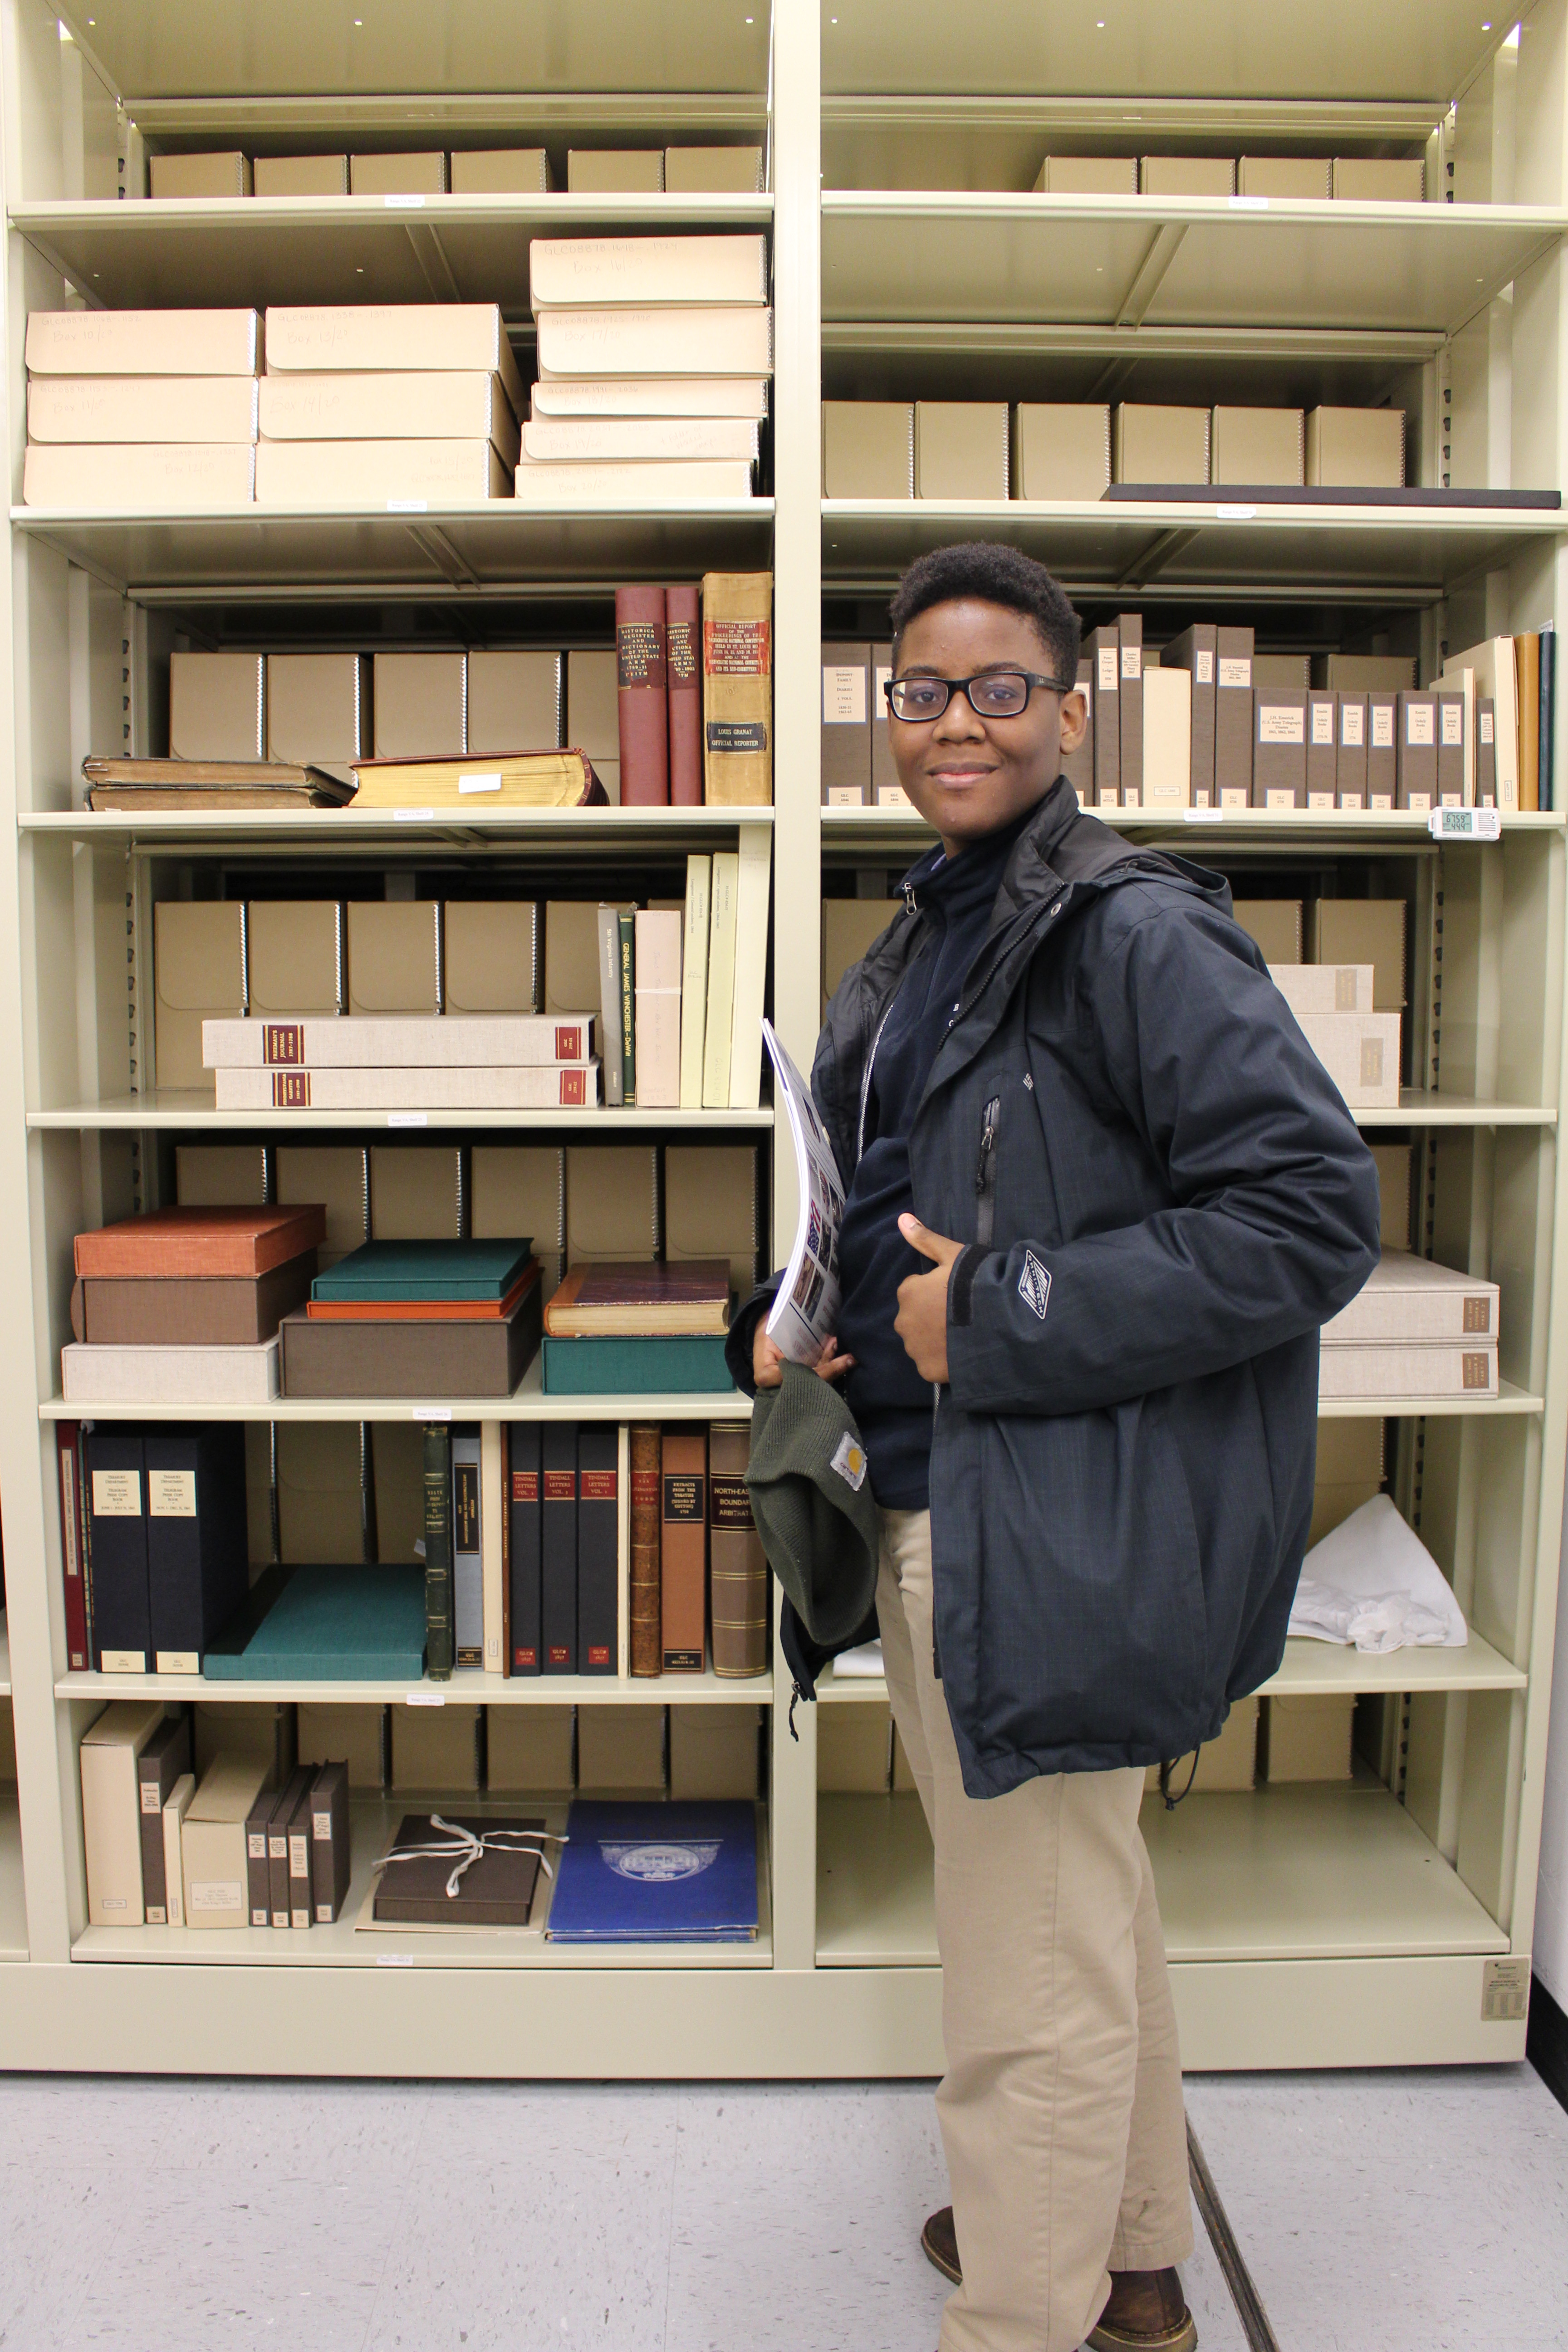 A Brooklyn Collegiate student in the vault at the Gilder Lehrman Collection.